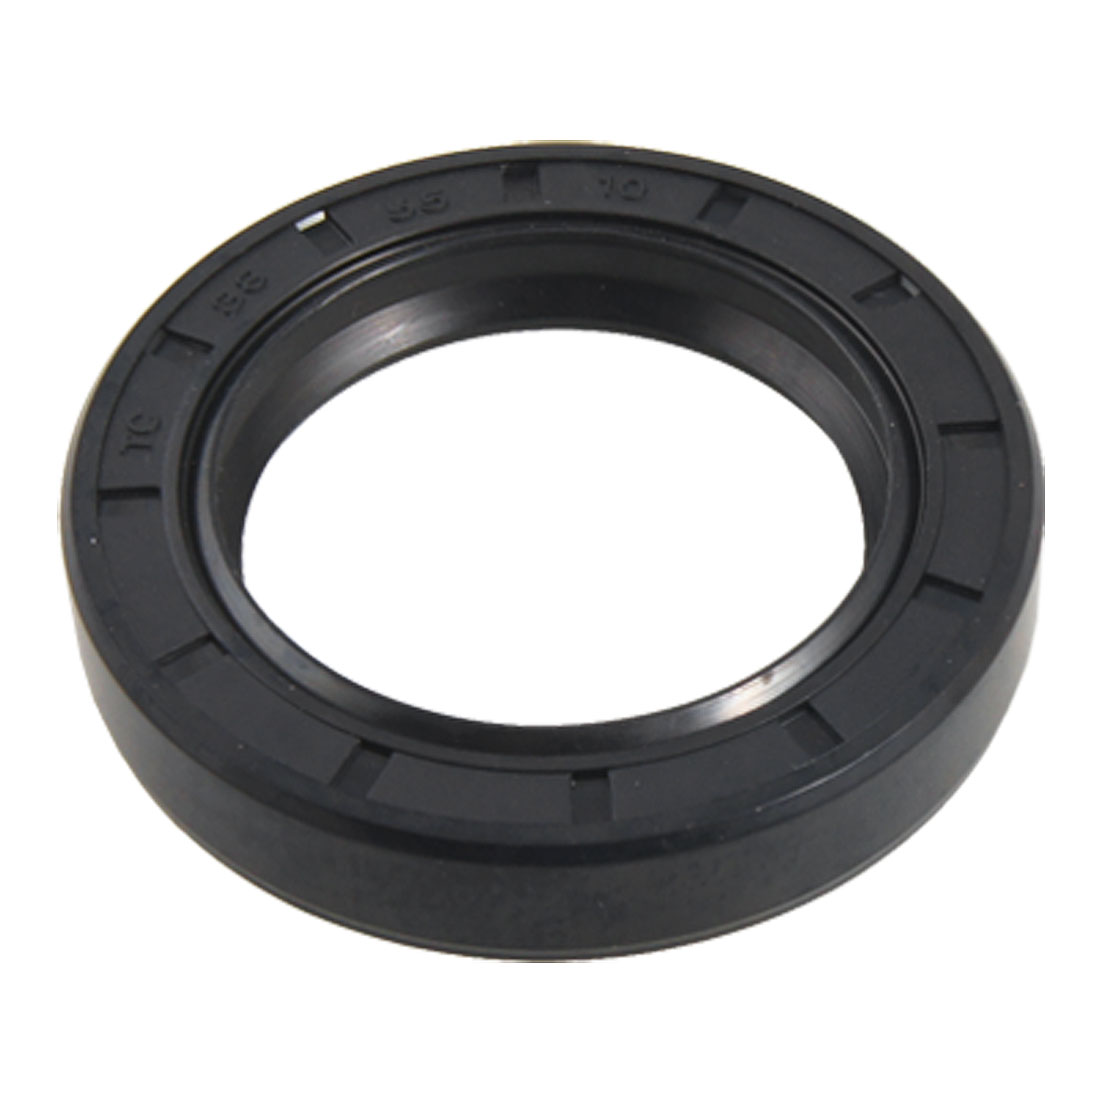 38mm x 55mm x 10mm TC Rubber Coated Engine Double Lip Rotary Shaft Oil Seal